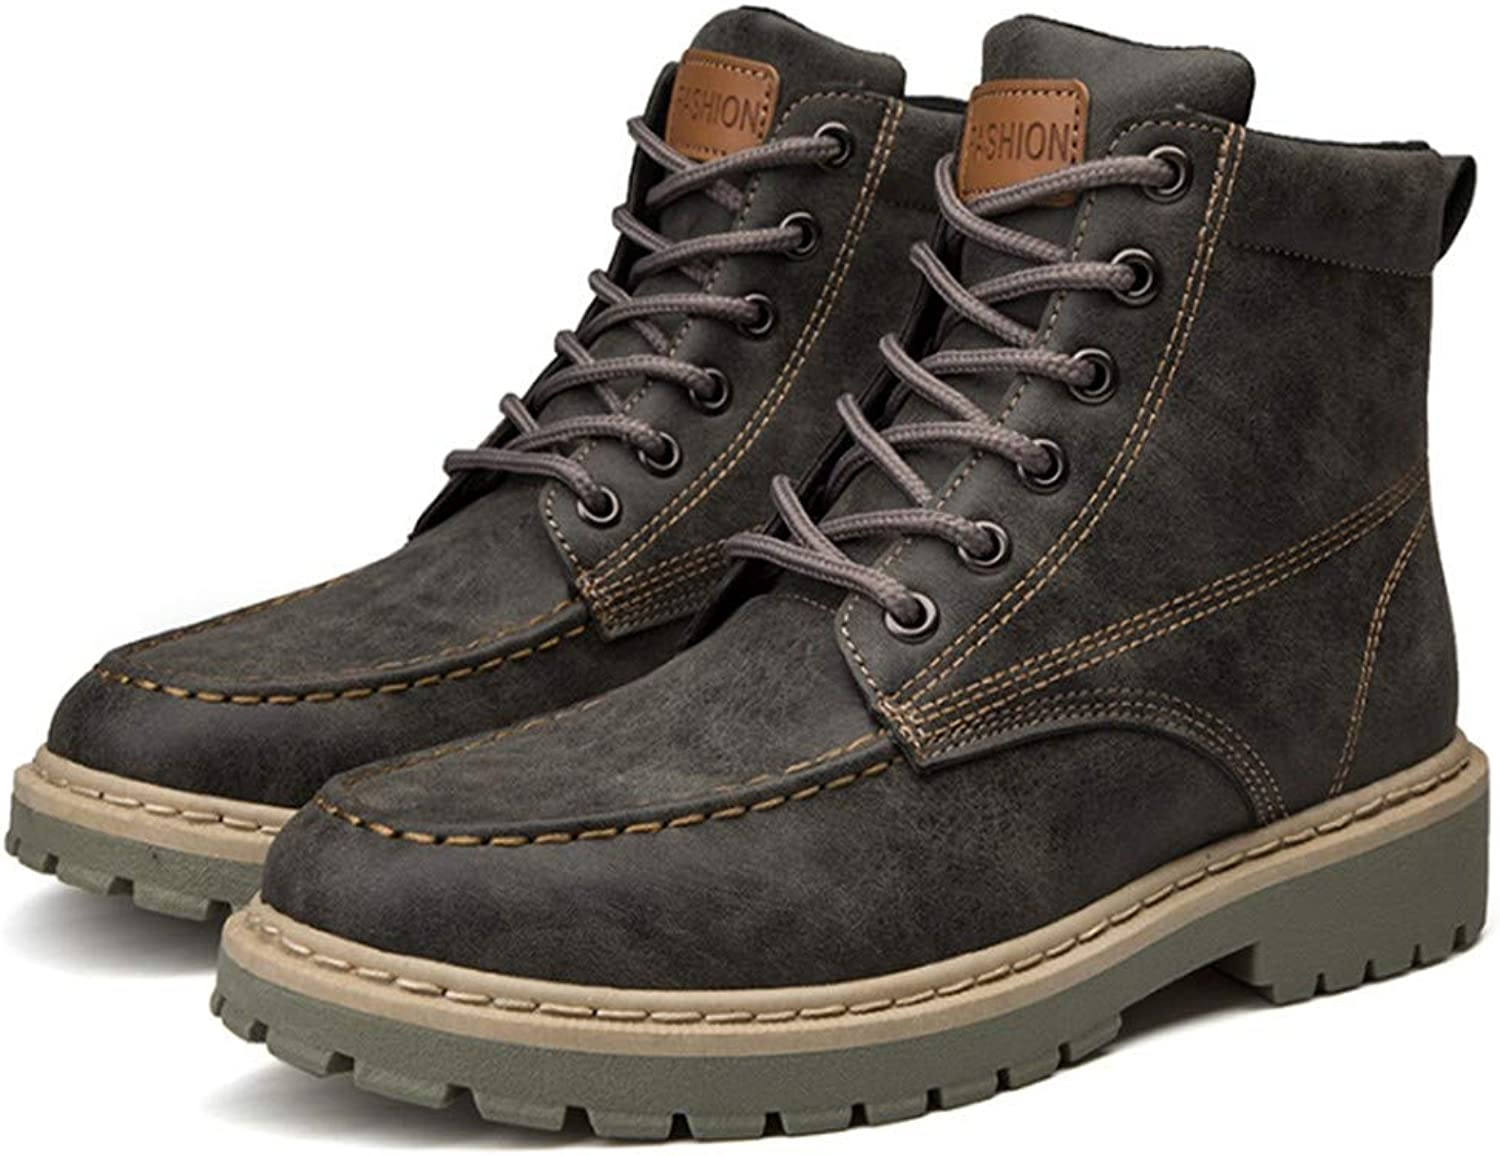 FMWLST Boots PU Men'S Boots Autumn And Winter Casual Ankle Boots Lace-Up shoes Men'S Non-Slip shoes